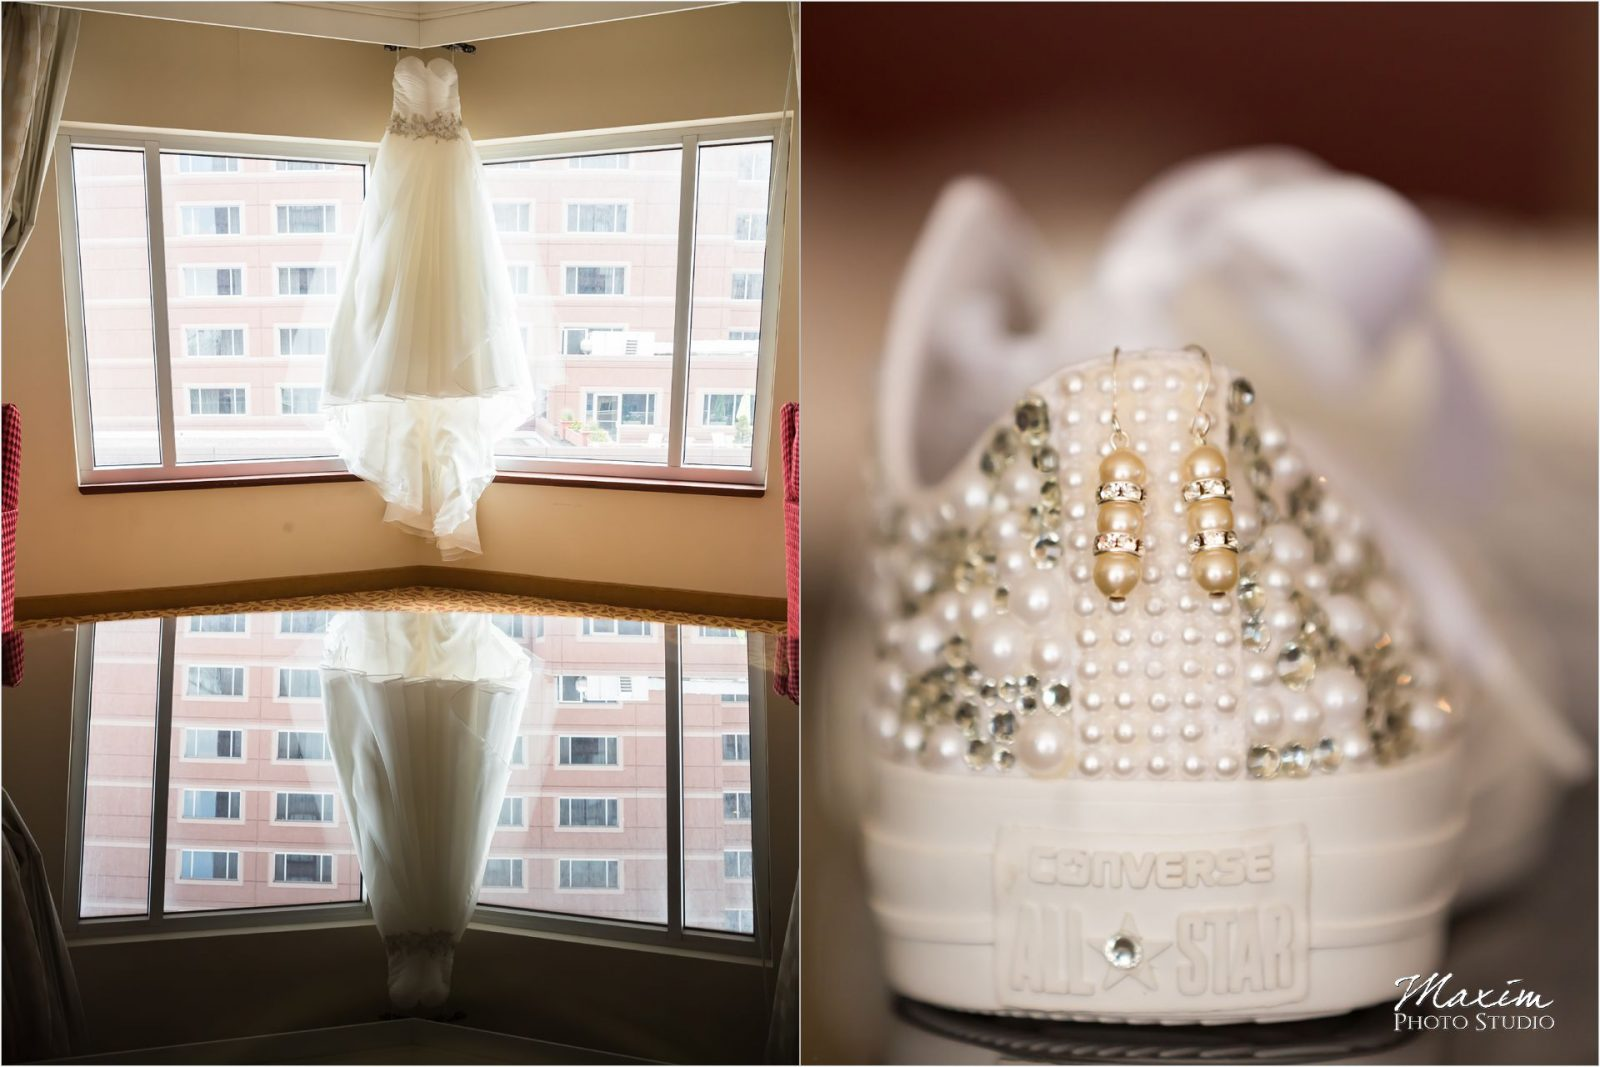 Marriott Rivercenter Covington Kentucky Wedding Preparations dress